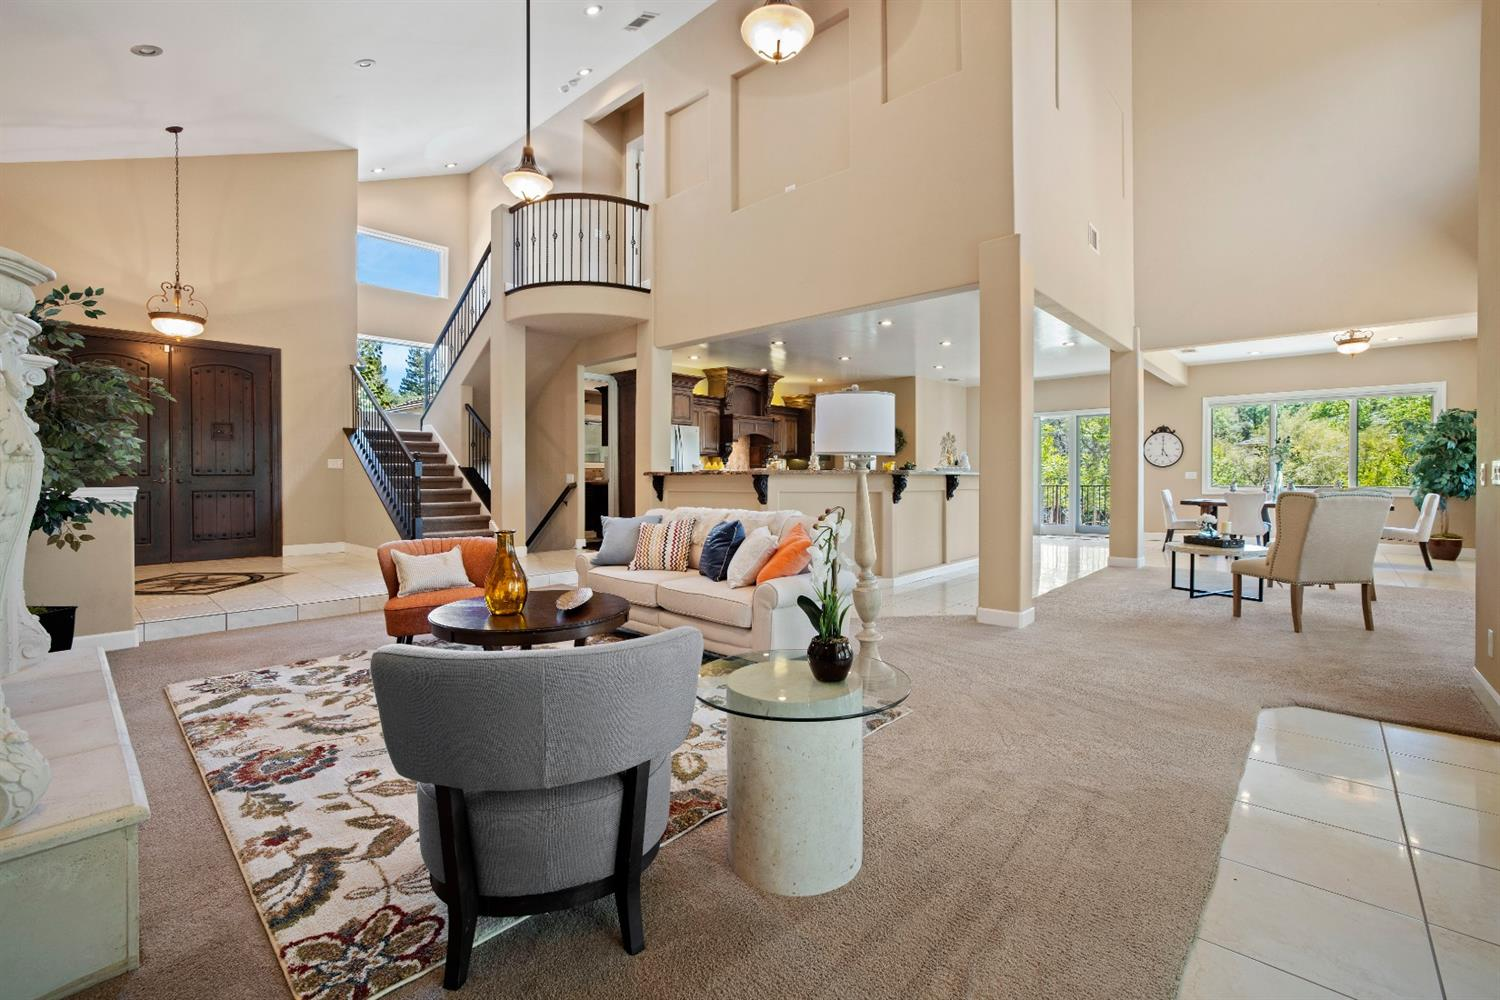 View of front door, formal living room, stairs to master bedroom and kitchen and formal dining room.